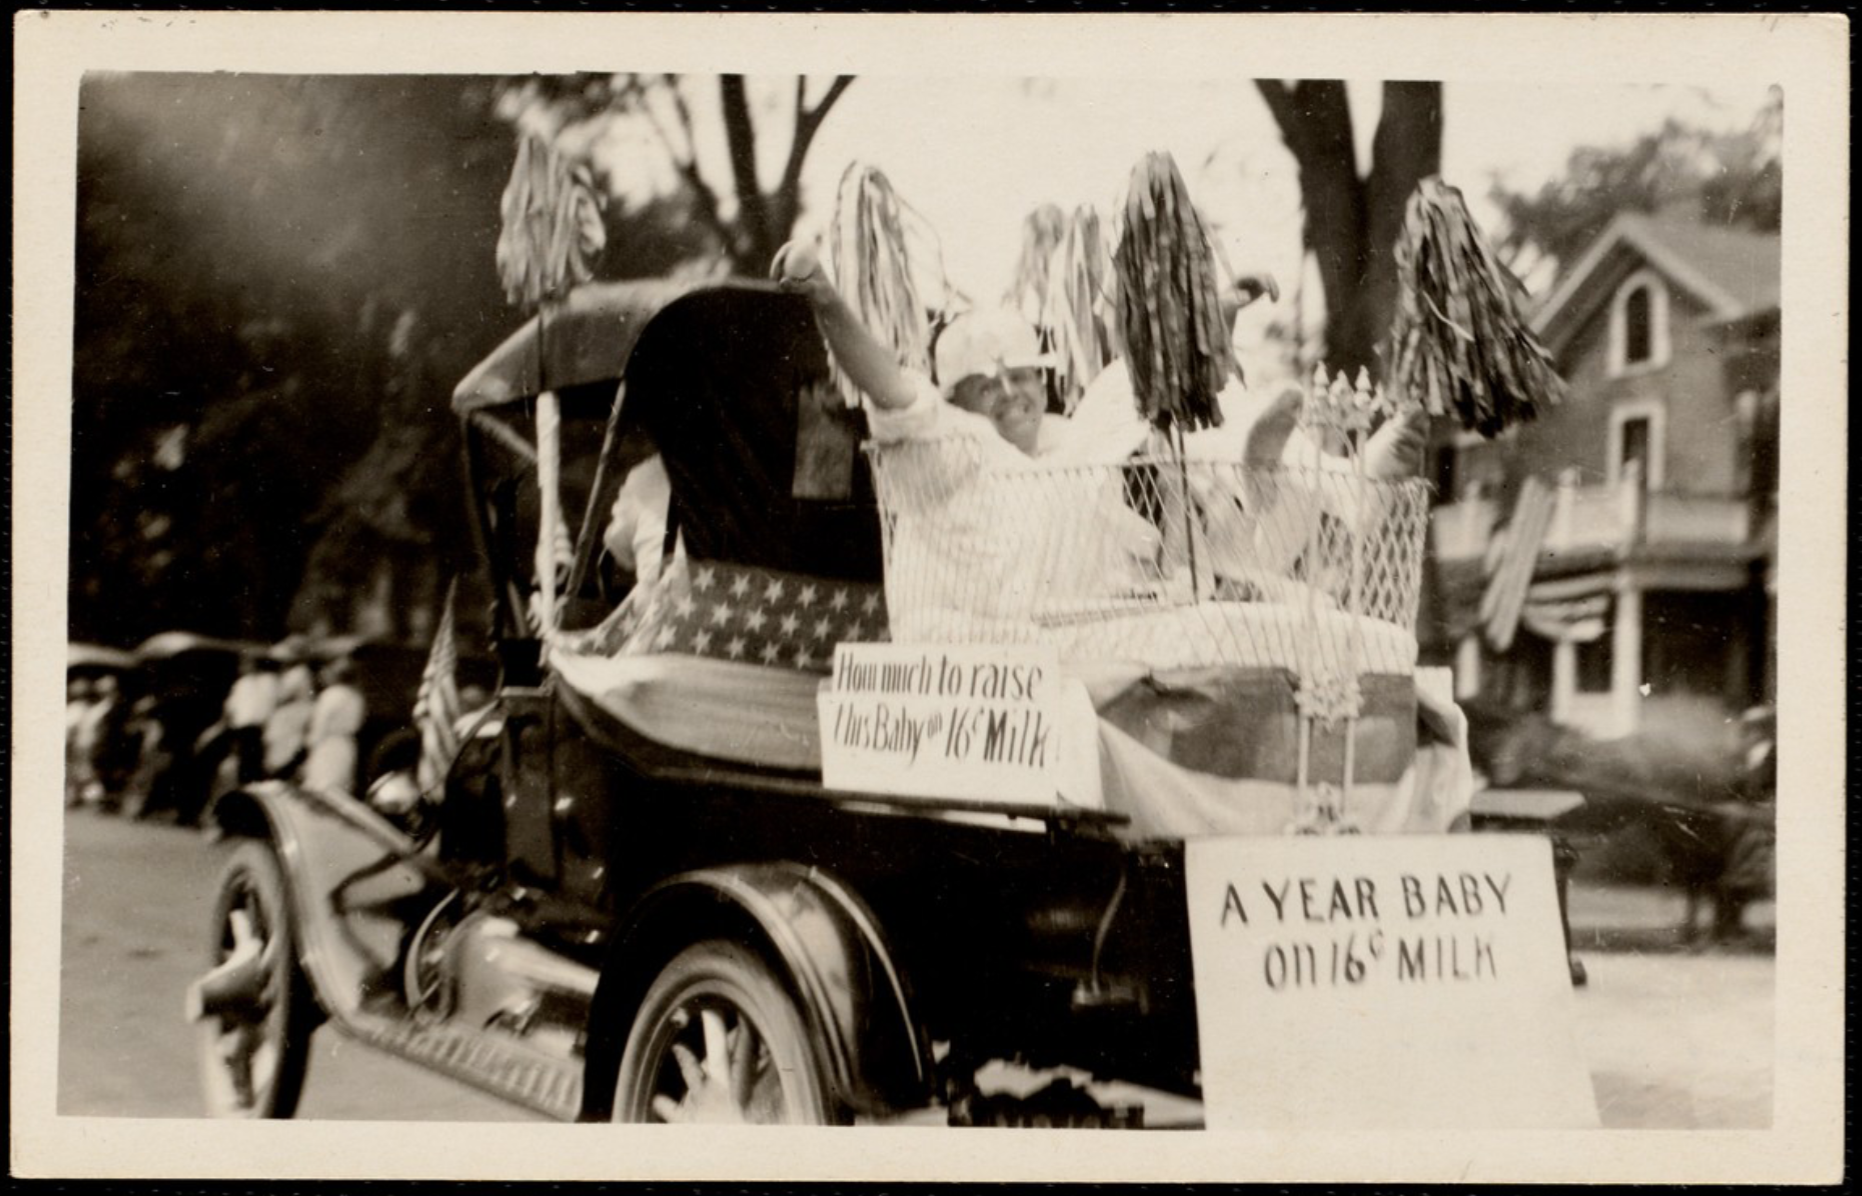 4th of July Parade, 1921. Photo by E.C. Newtons